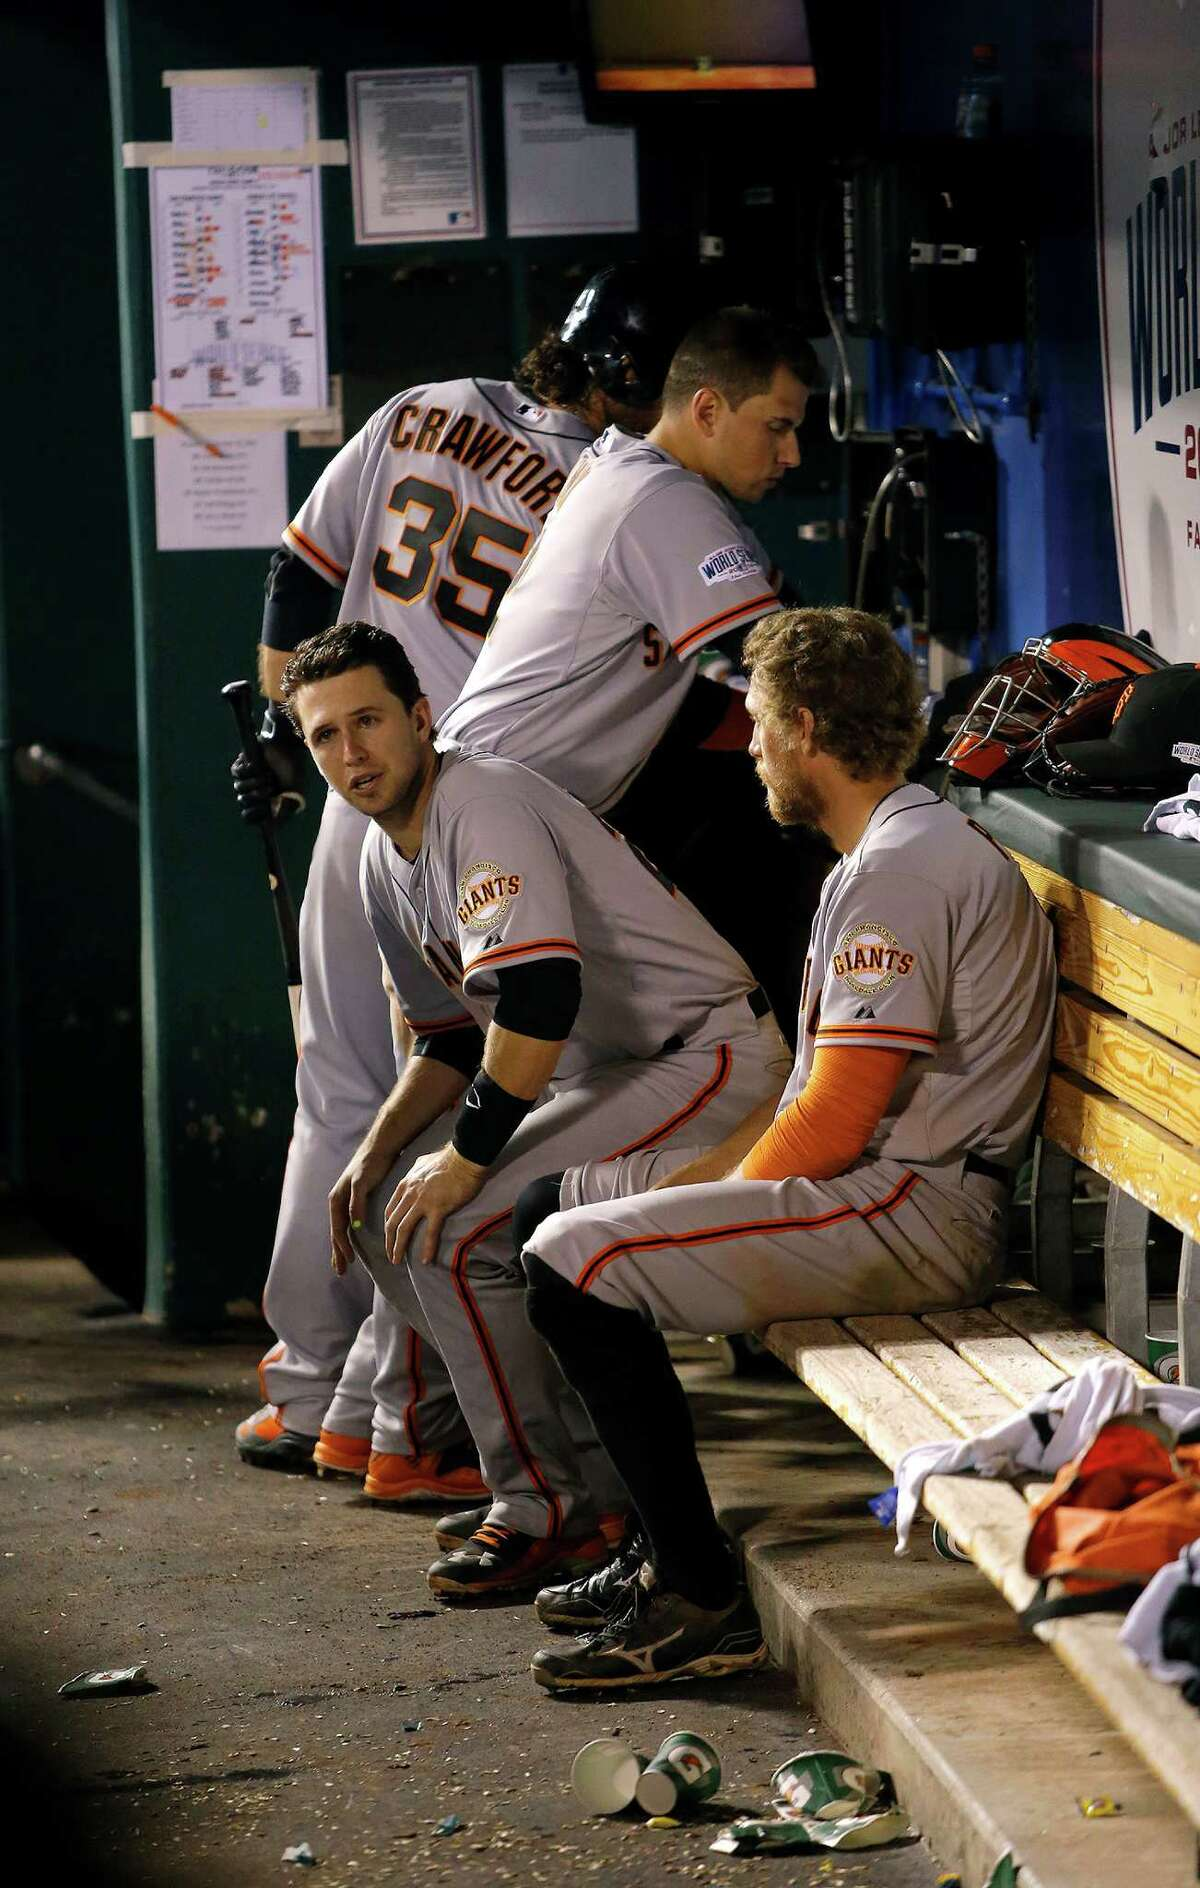 Giants Buster Posey and Hunter Pence sit in the dugout in the top of the ninth inning during Game 2 of the World Series at Kauffman Stadium on Wednesday, Oct. 22, 2014 in Kansas City, Mo.